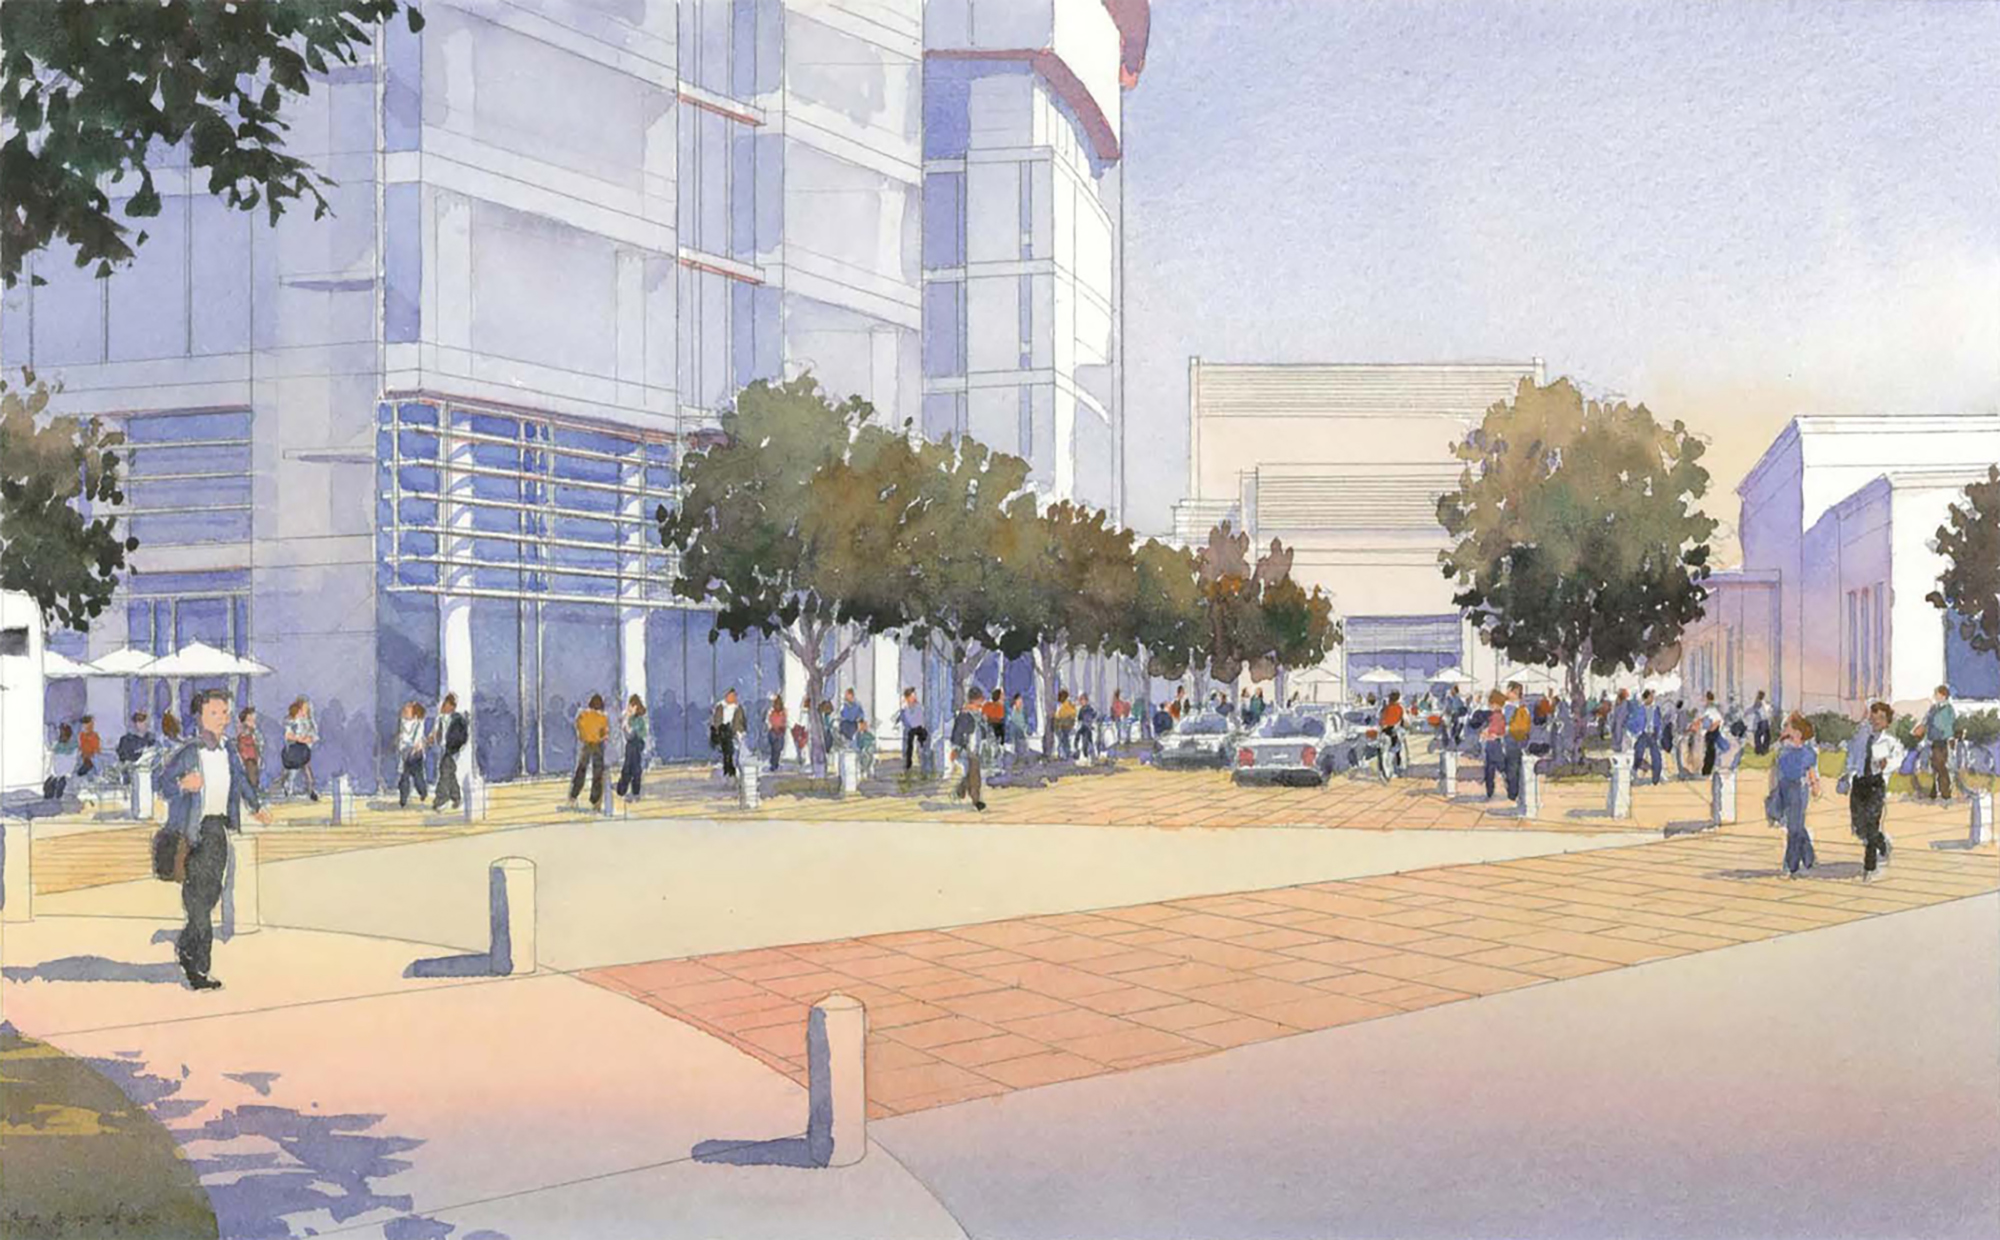 Developer and philanthropist John Arrillaga envisioned adding four office towers and a performing arts theater at 27 University Ave. in Palo Alto.Rendering courtesy city of Palo Alto.